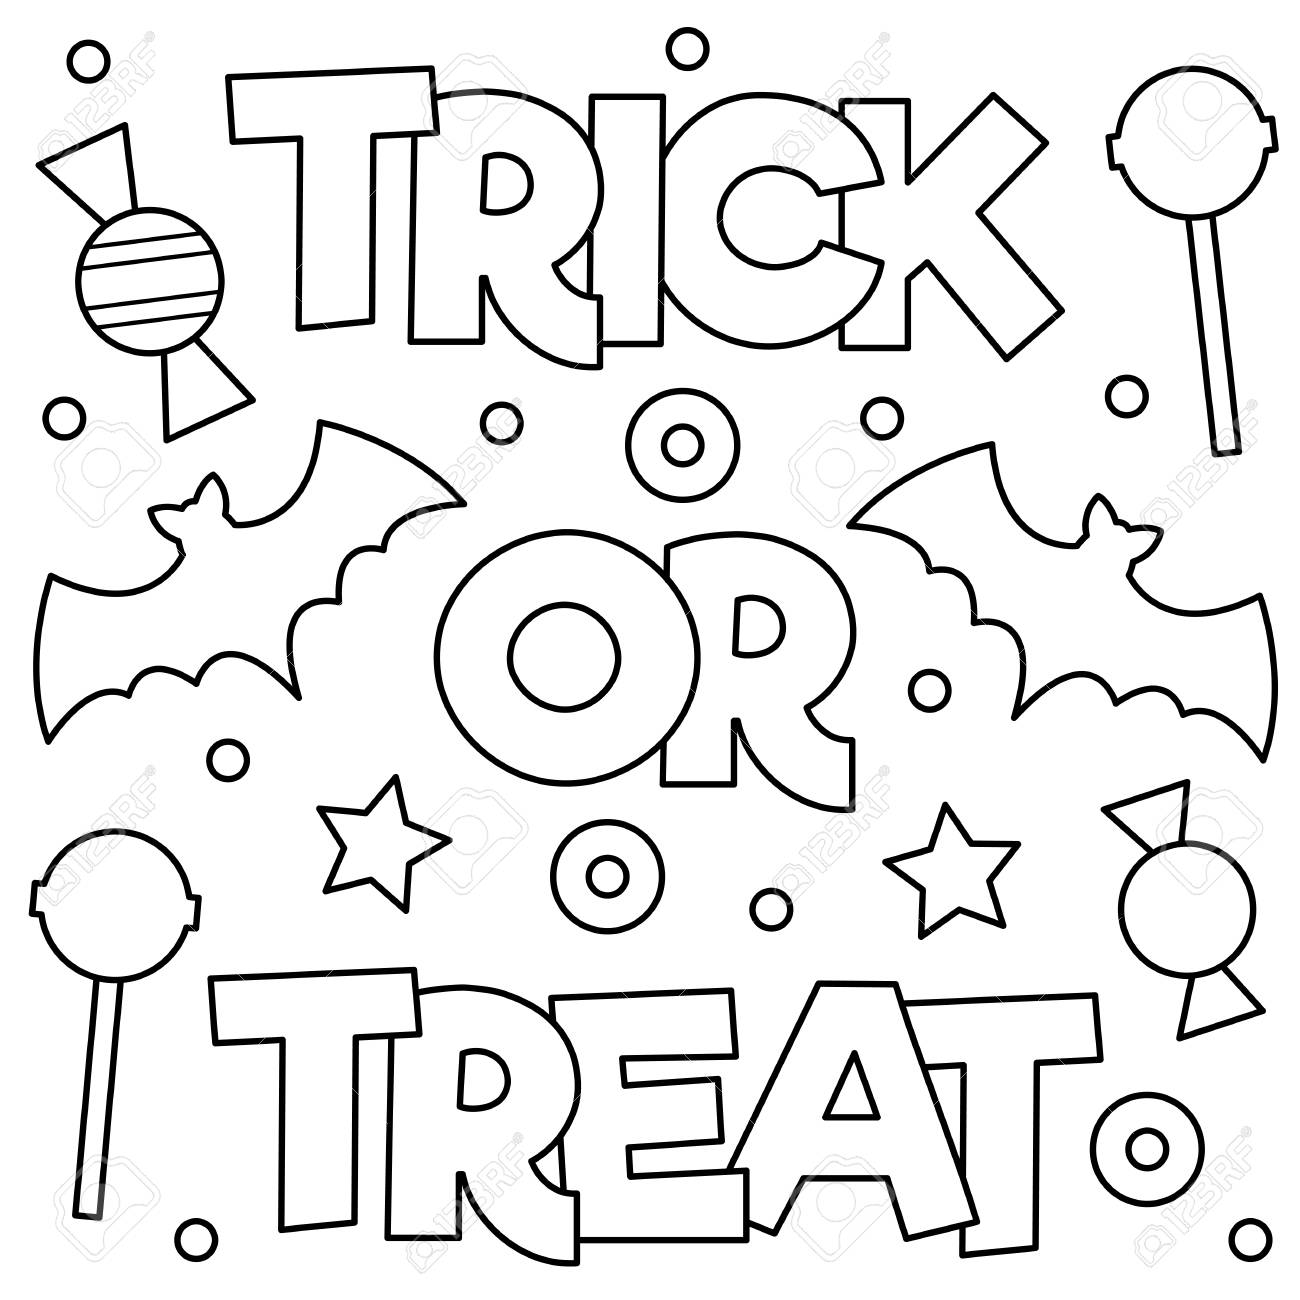 Trick or treat. Coloring page. Vector illustration. - 86906647